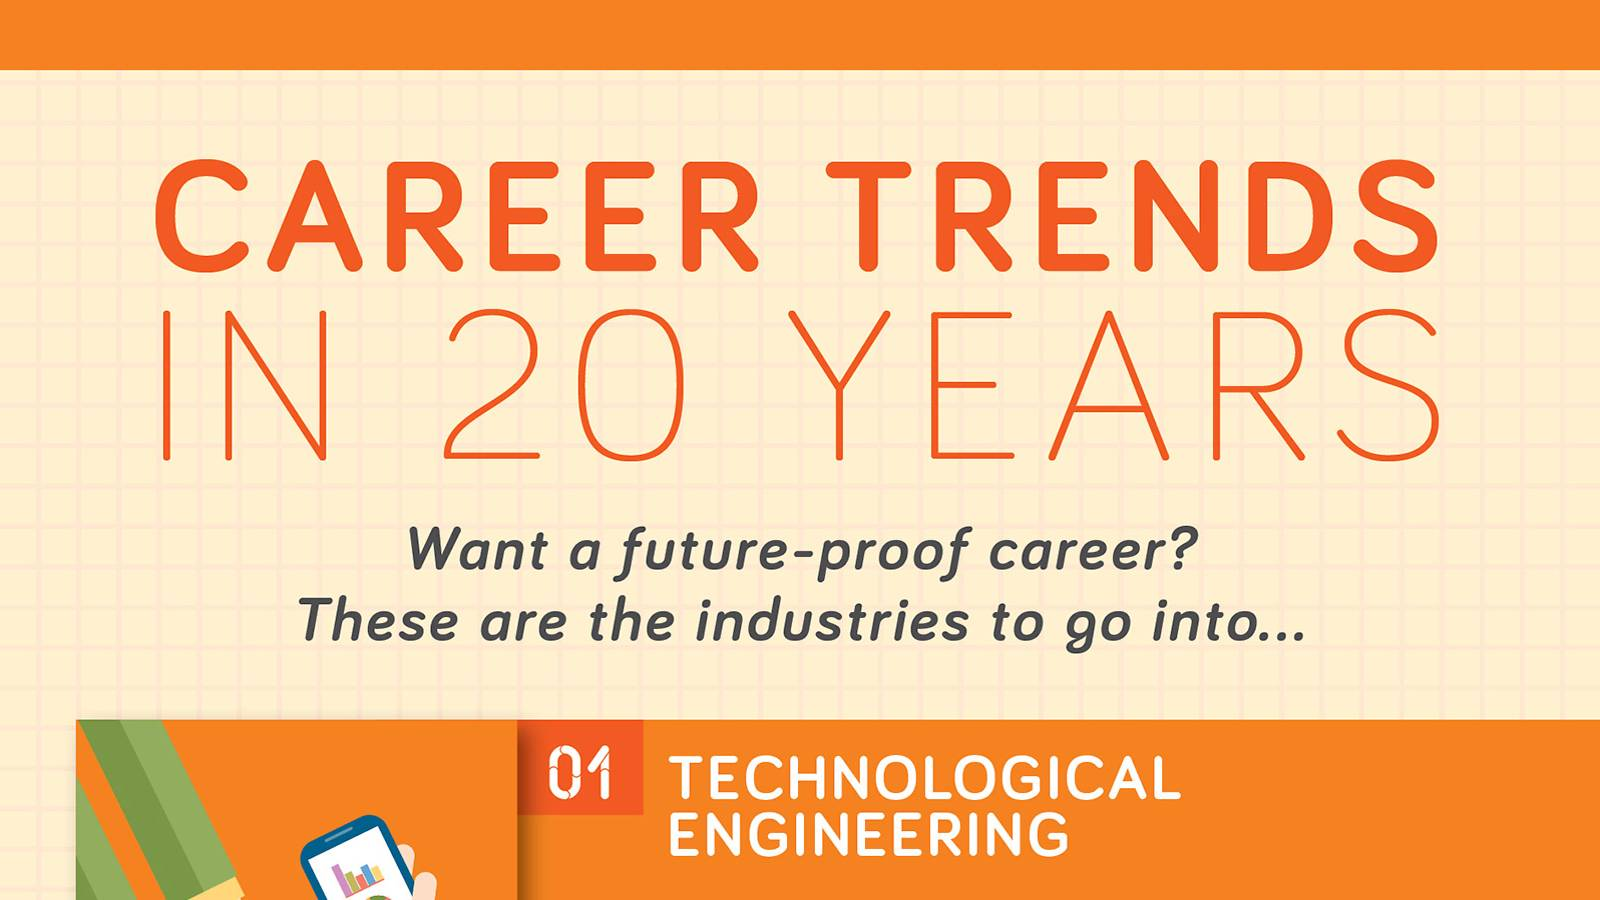 kids-Career-Trends-in-20-years-INFOGRAPHIC1